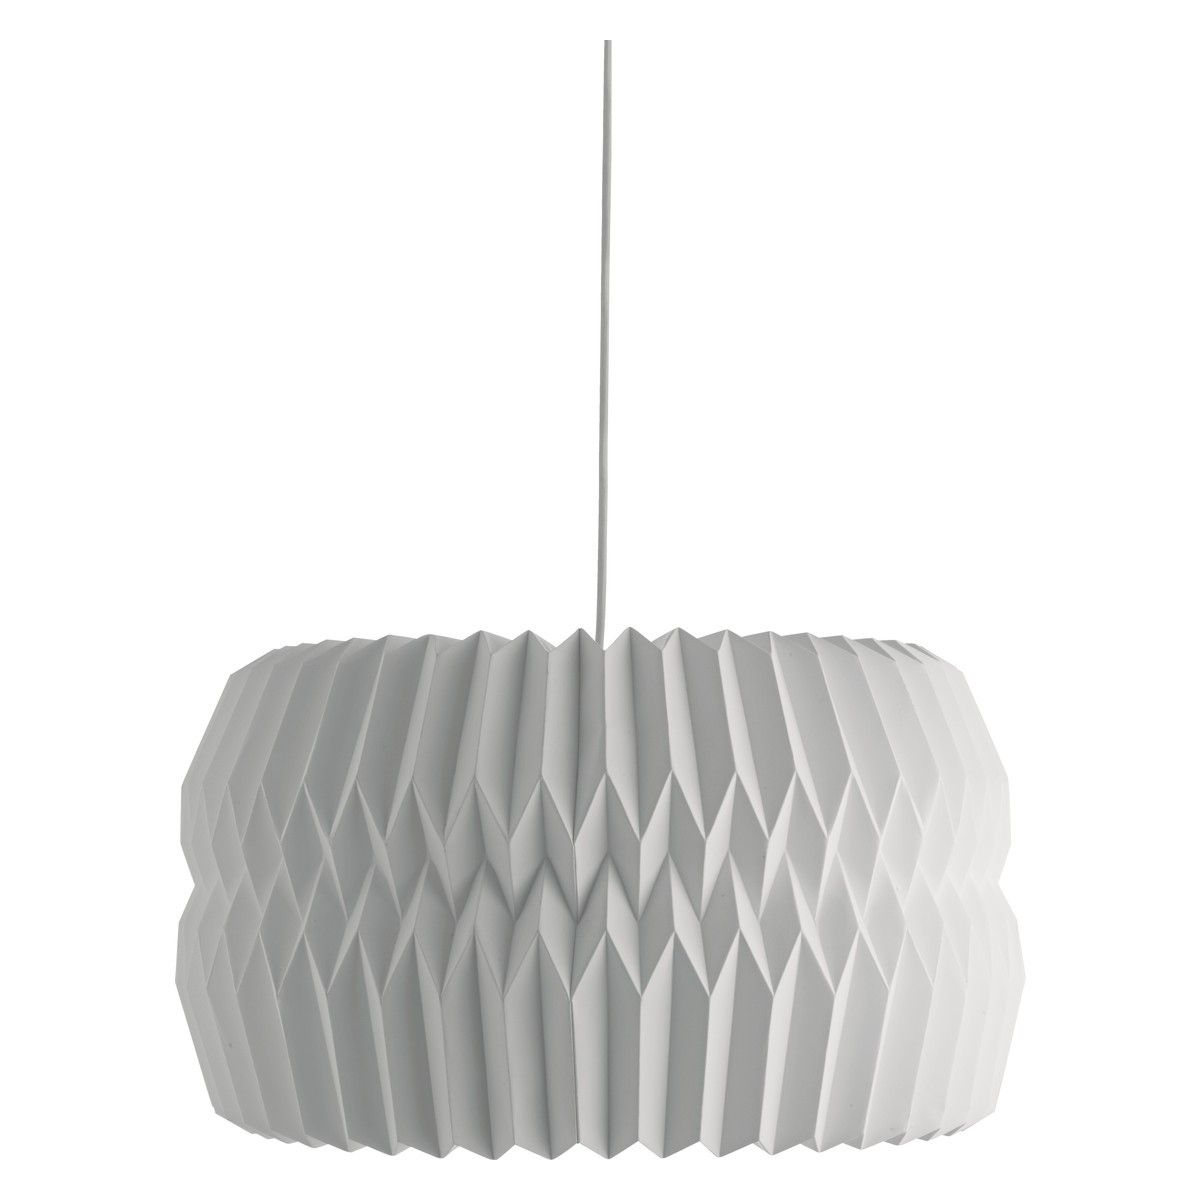 KURA Extra large white lampshade | Ceiling lamp shades, Large ...